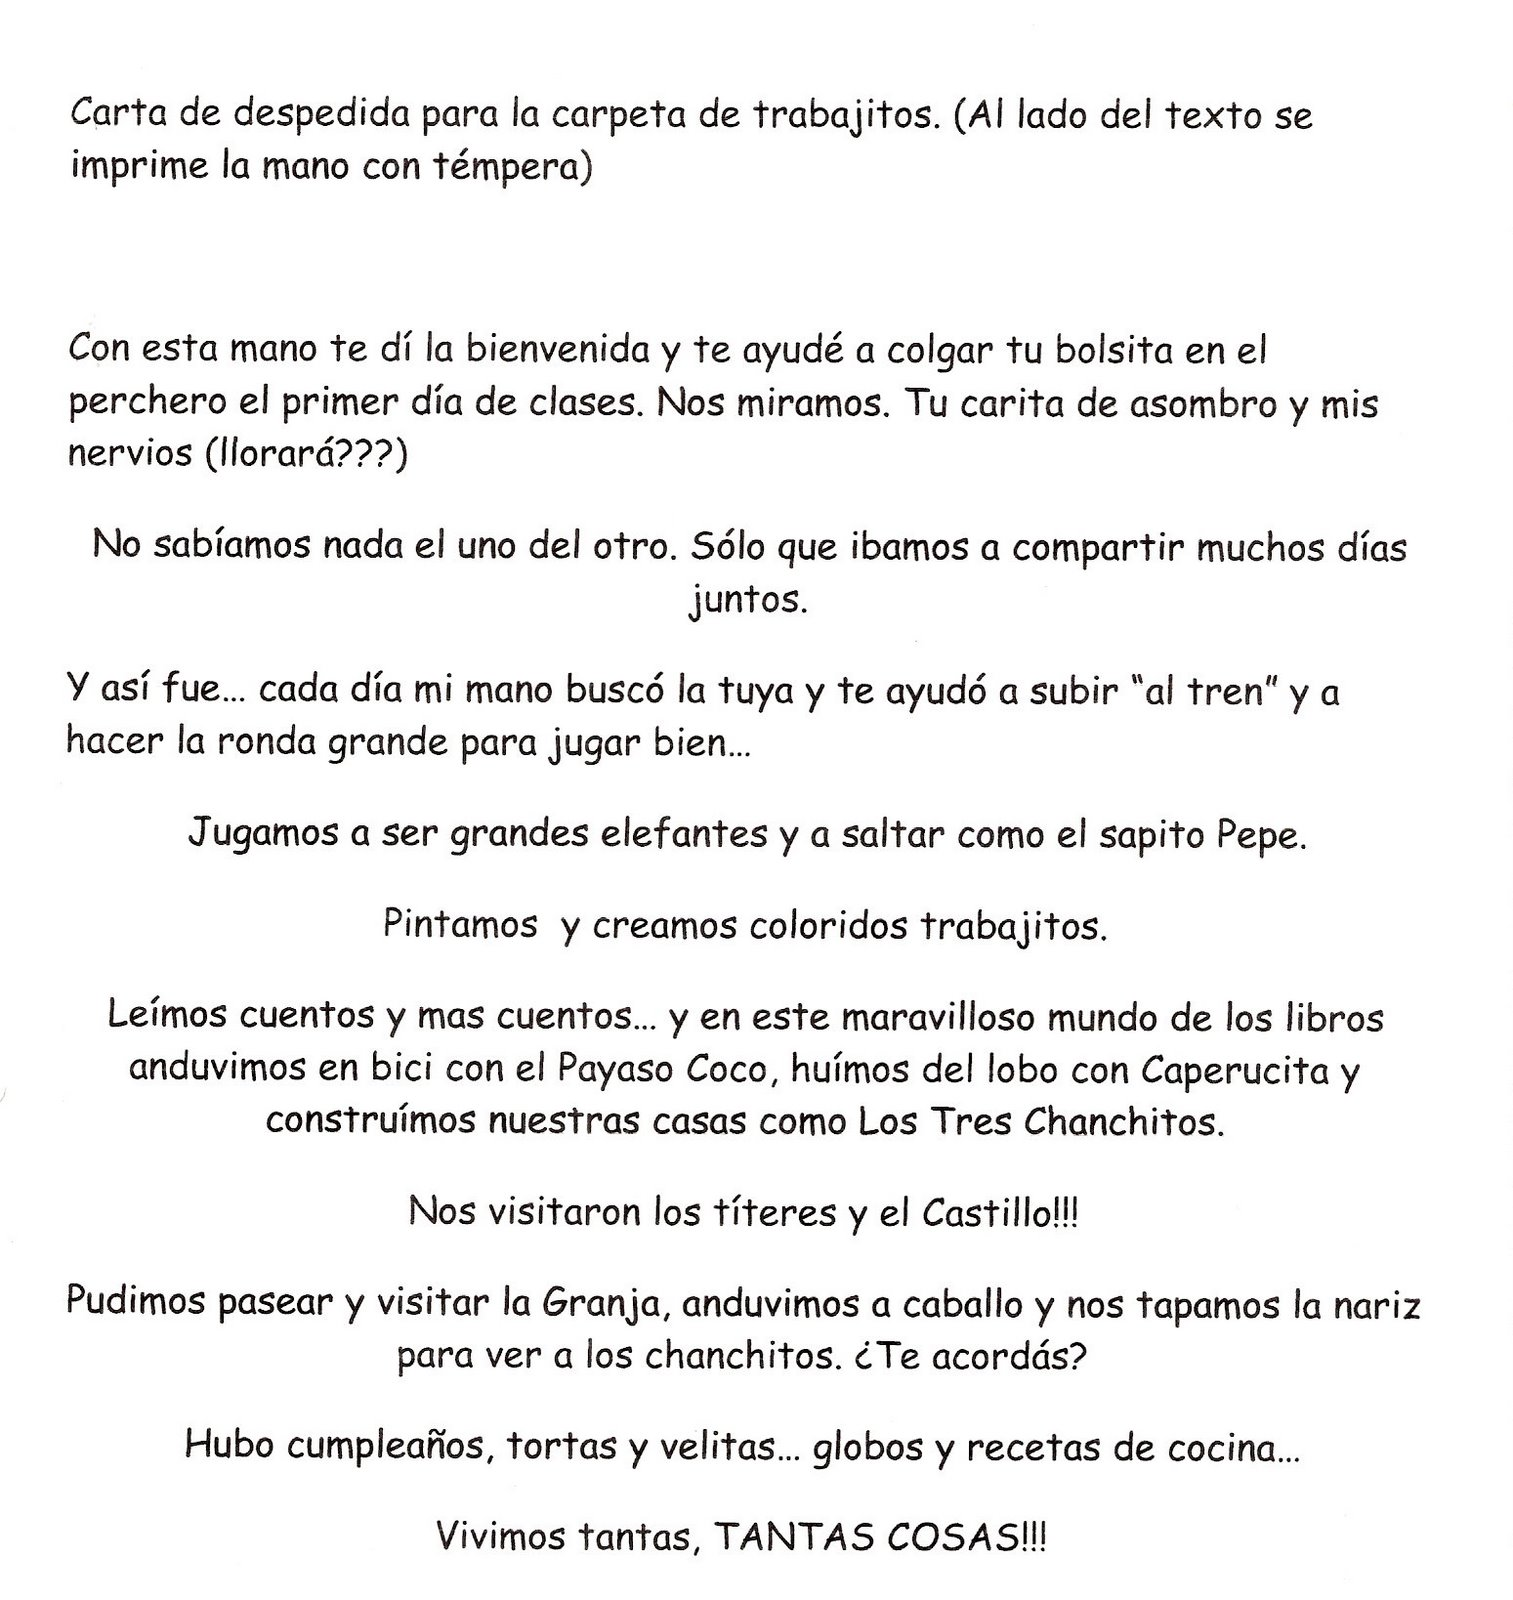 Una Carta De Despedida